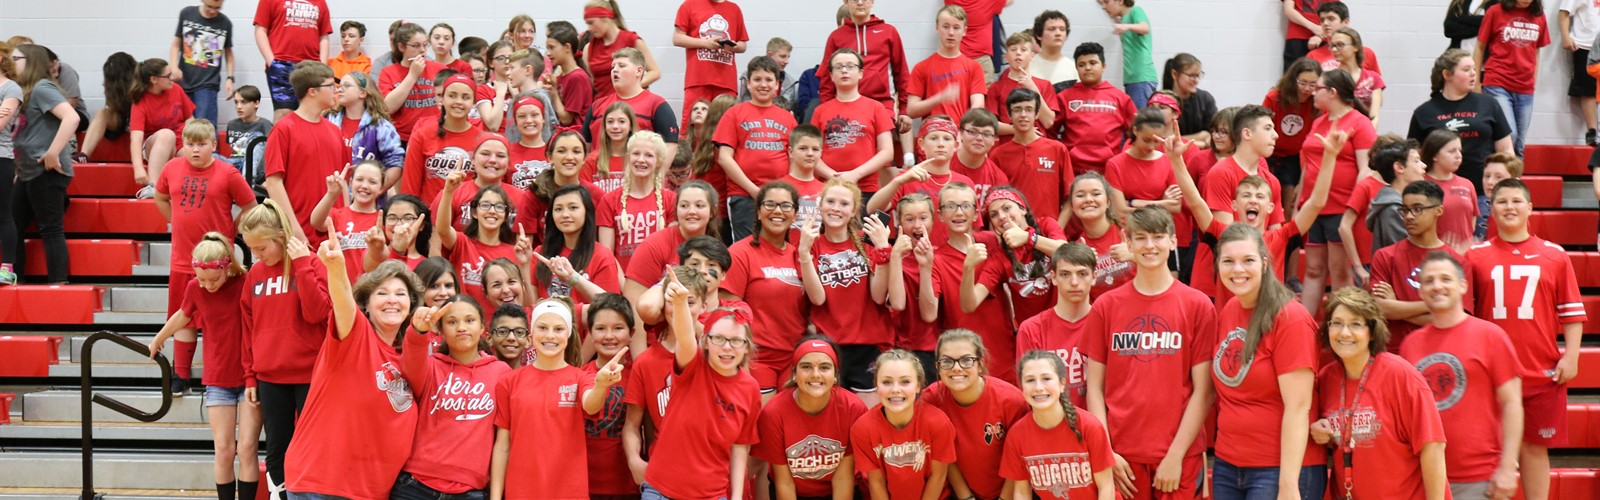 Van Wert Middle School's Fitness Festival red team